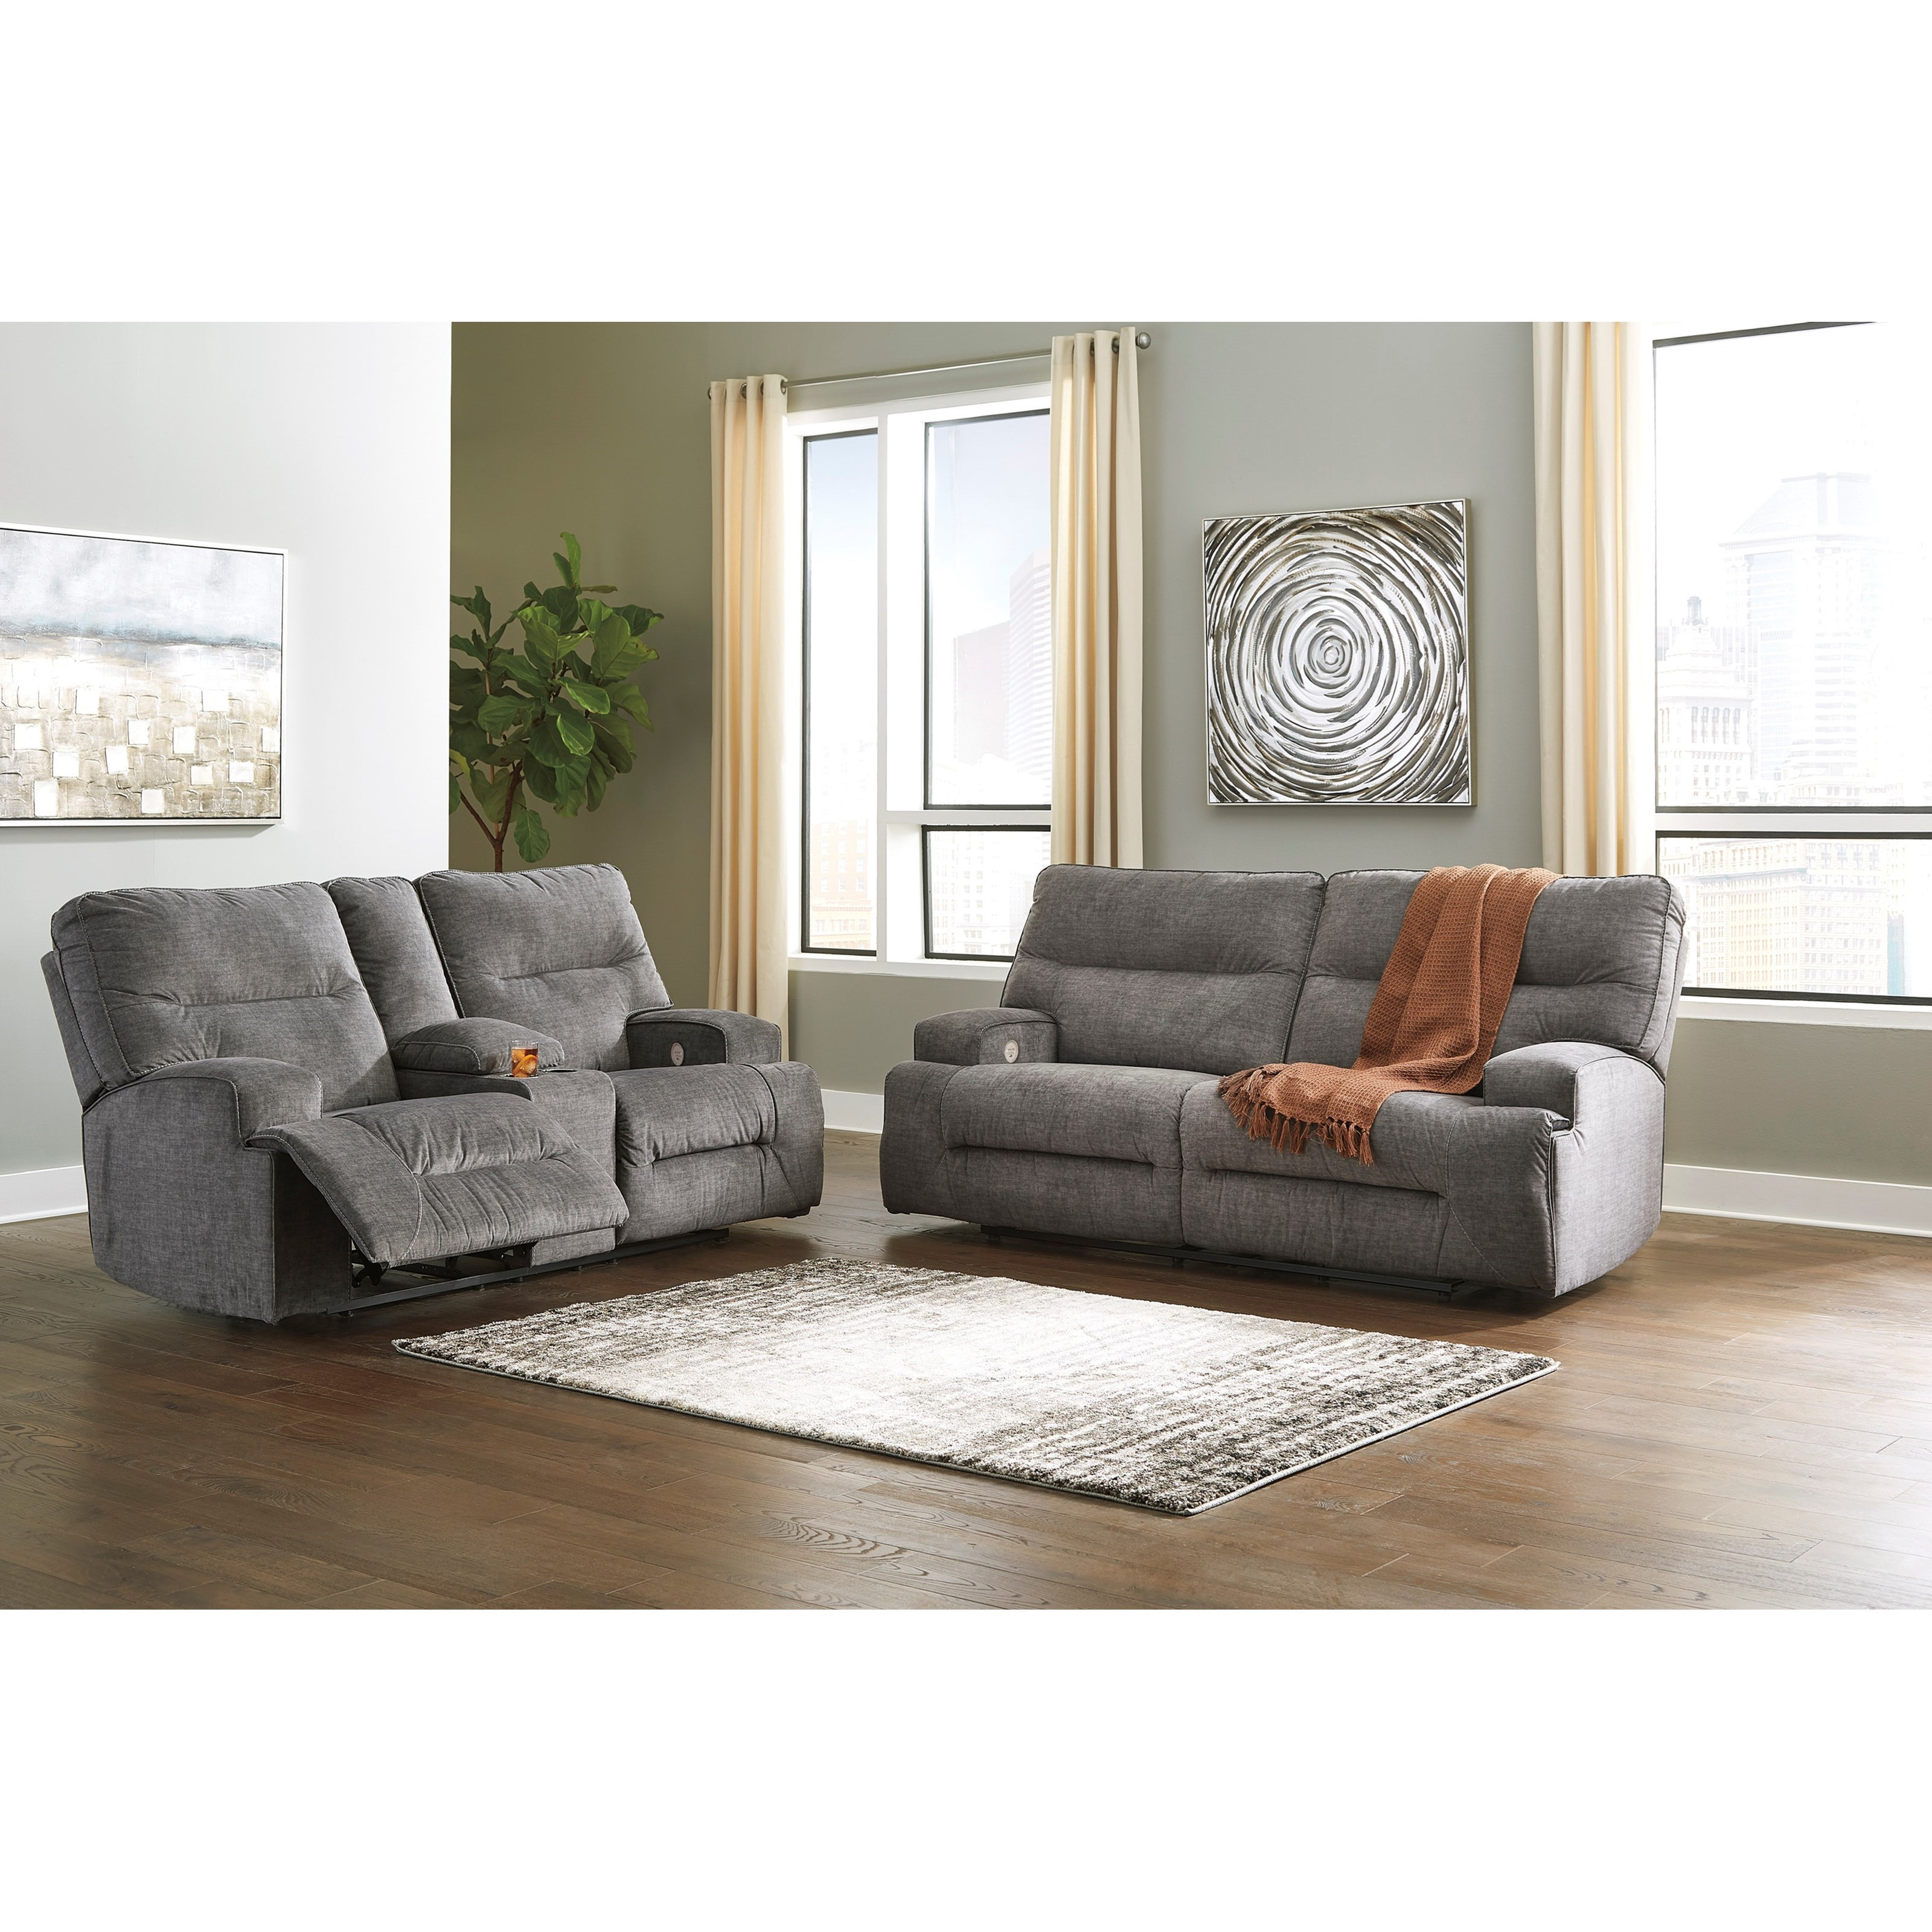 Coombs Power Reclining Living Room Group by Benchcraft at Northeast Factory Direct